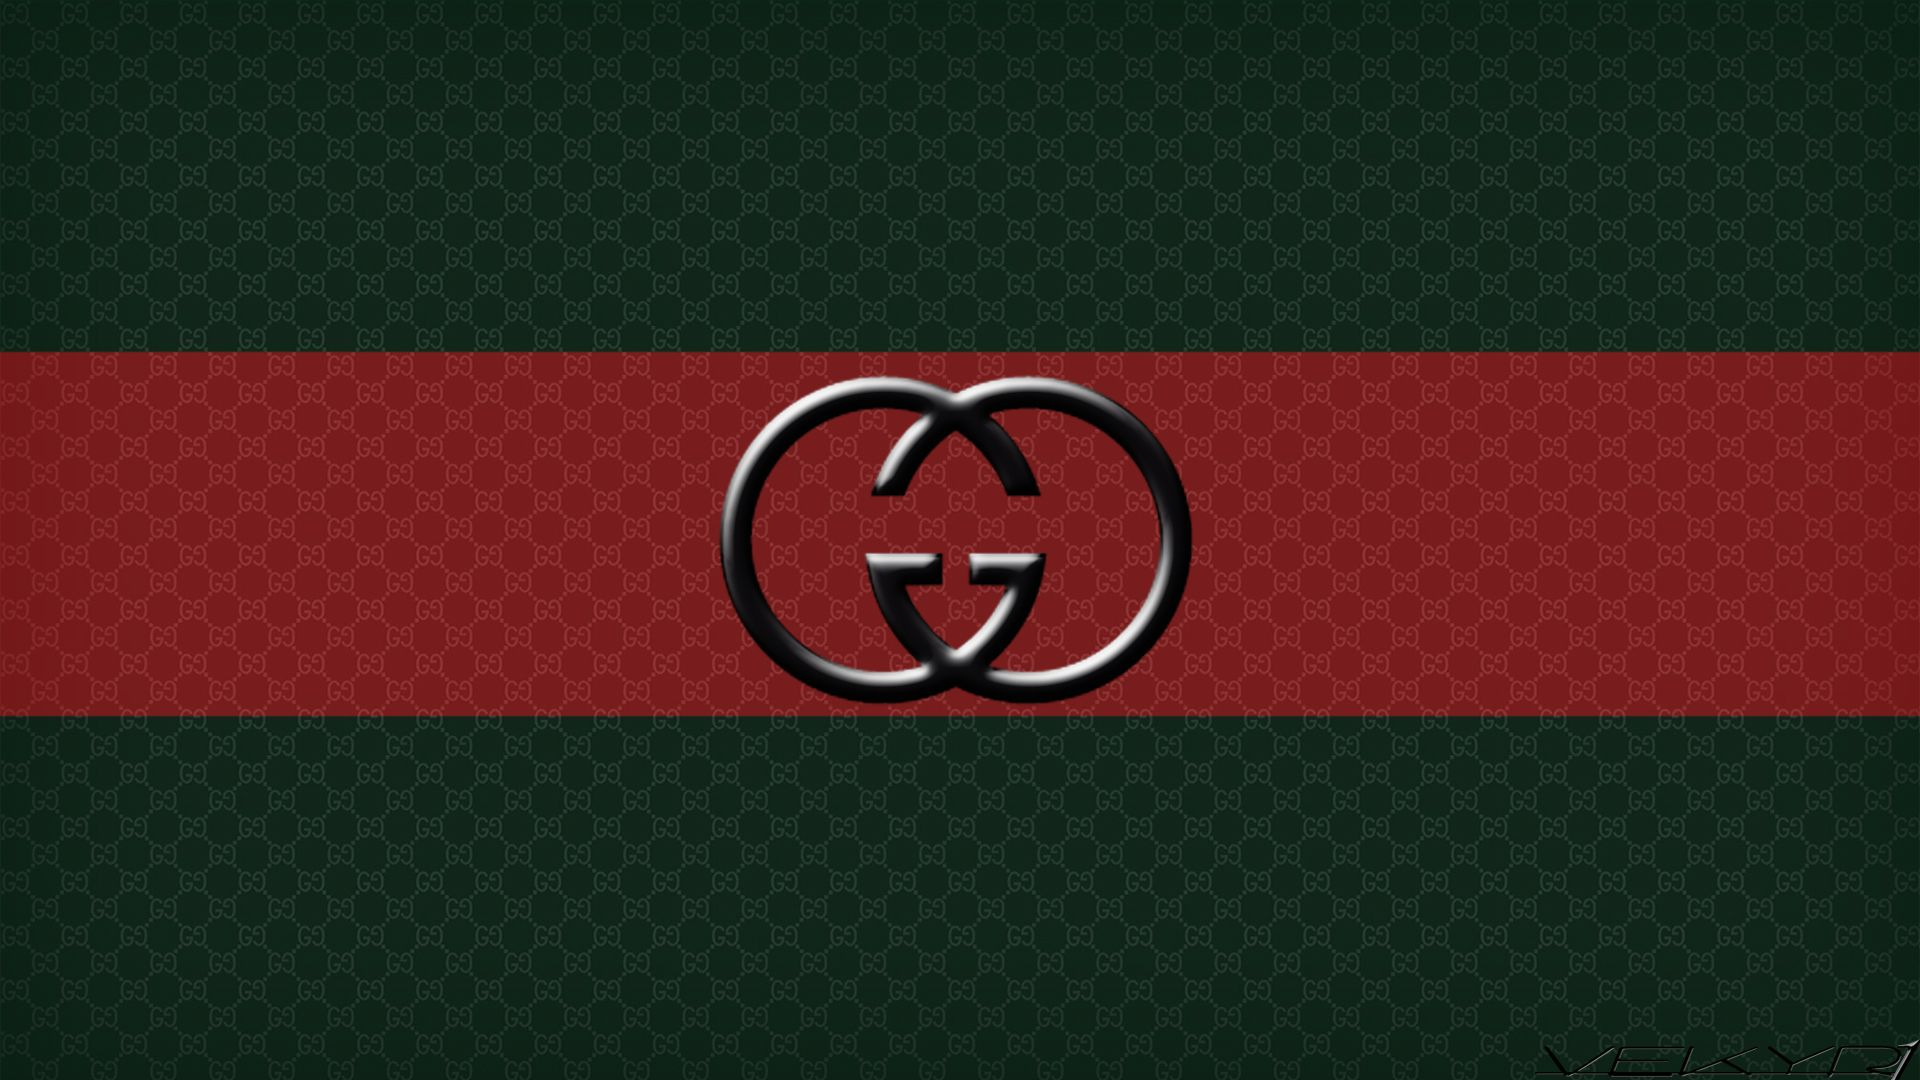 1000 images about Logo Gucci on Pinterest | Gucci, Gucci ...